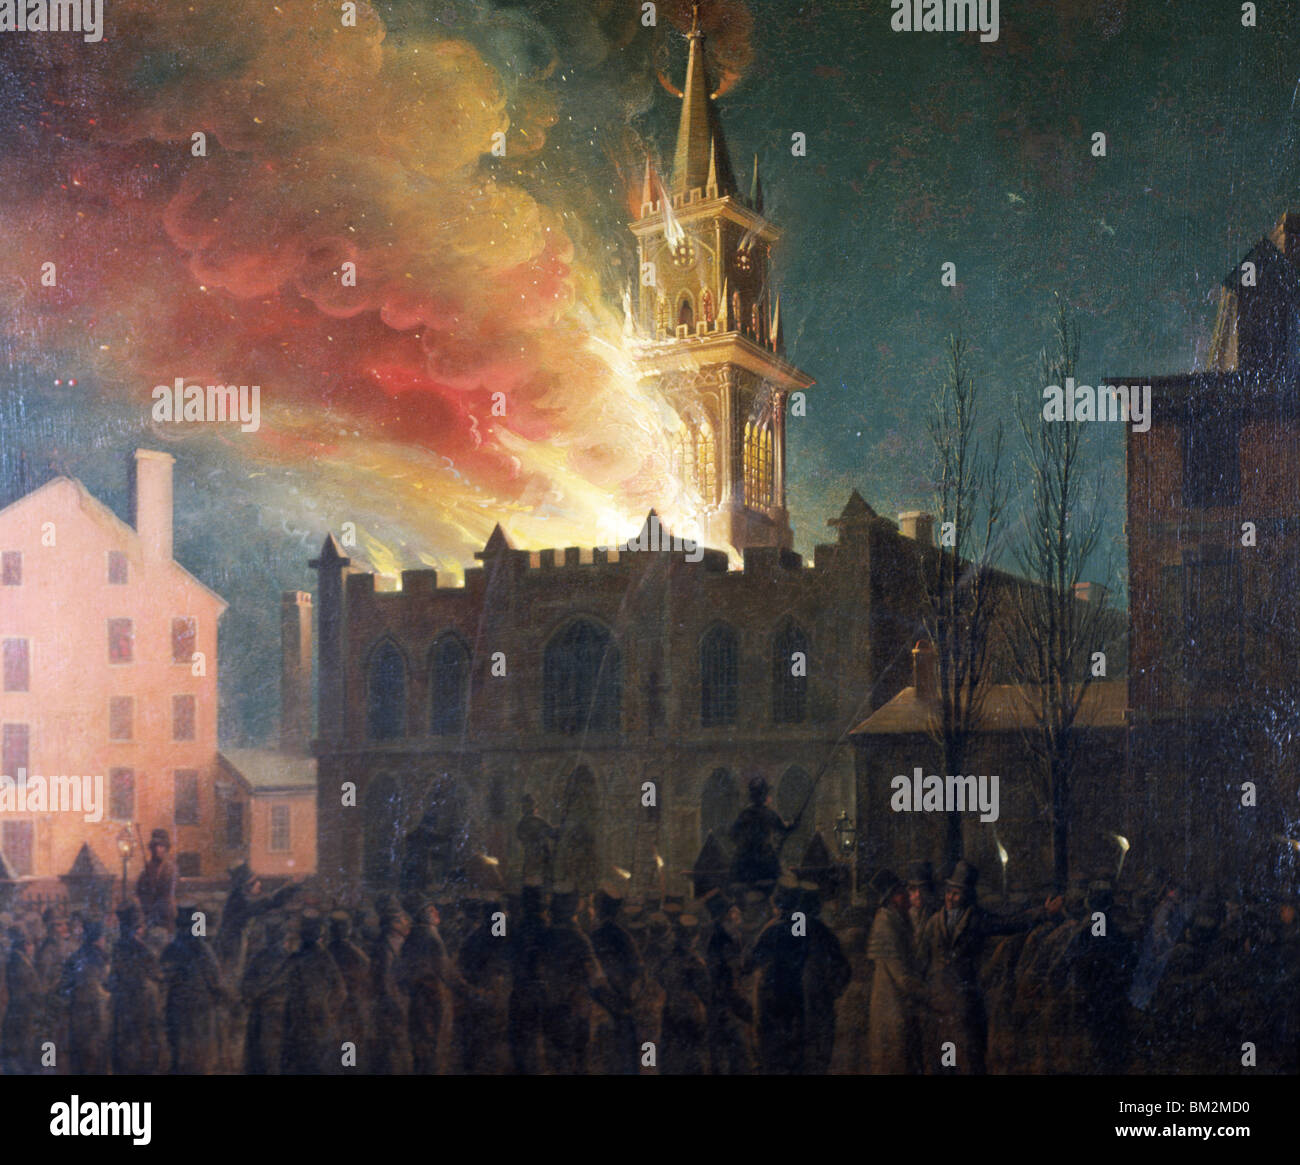 Conflagration of the Masonic Hall by John Lewis Krimmell,  oil on wood panel,  1819,  (1789-1821) - Stock Image